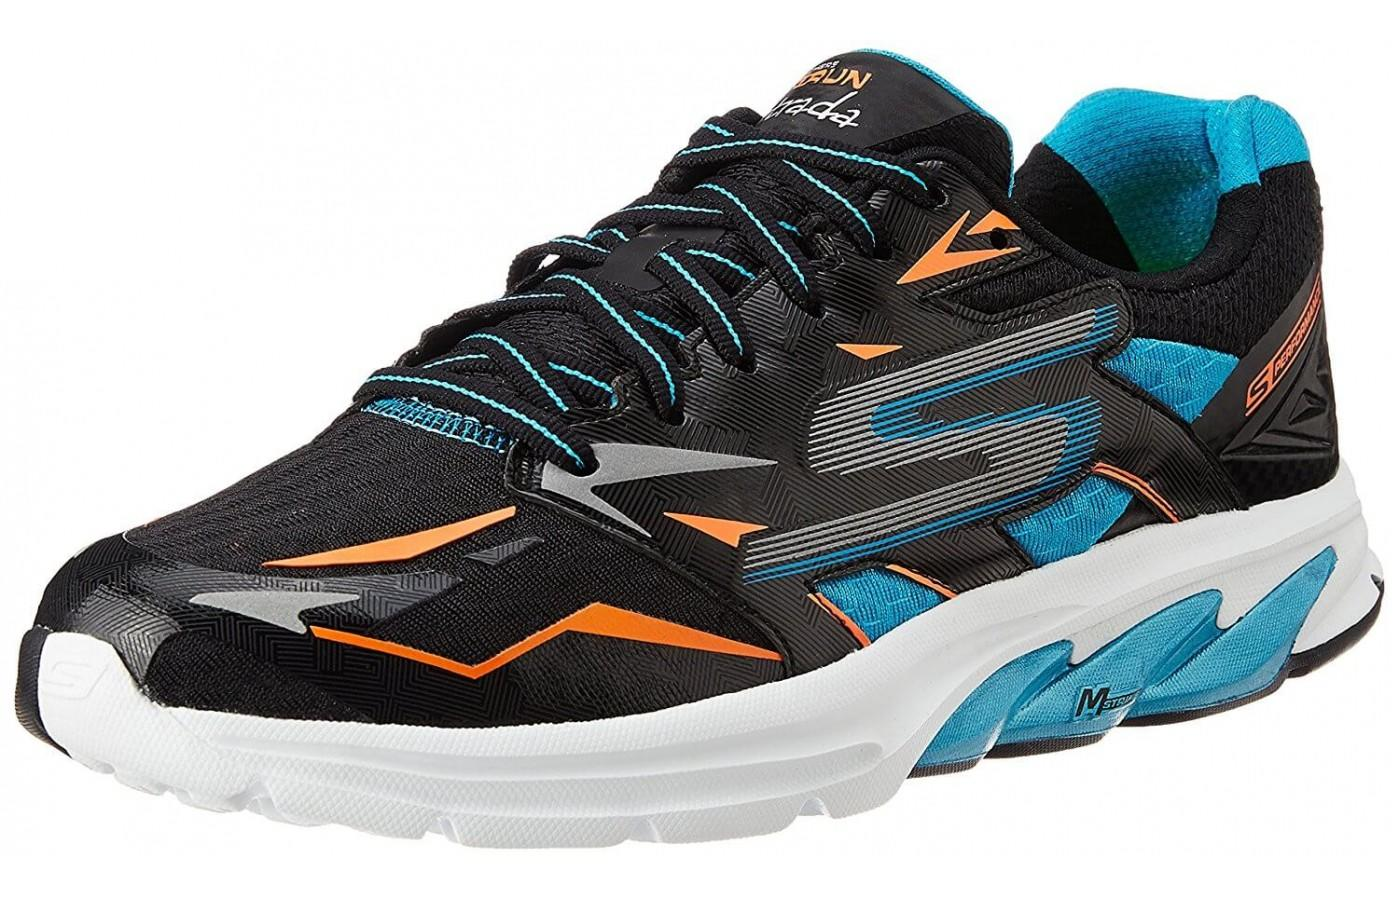 a3e07ad0d the Skechers GOrun Strada shown from the front/side ...